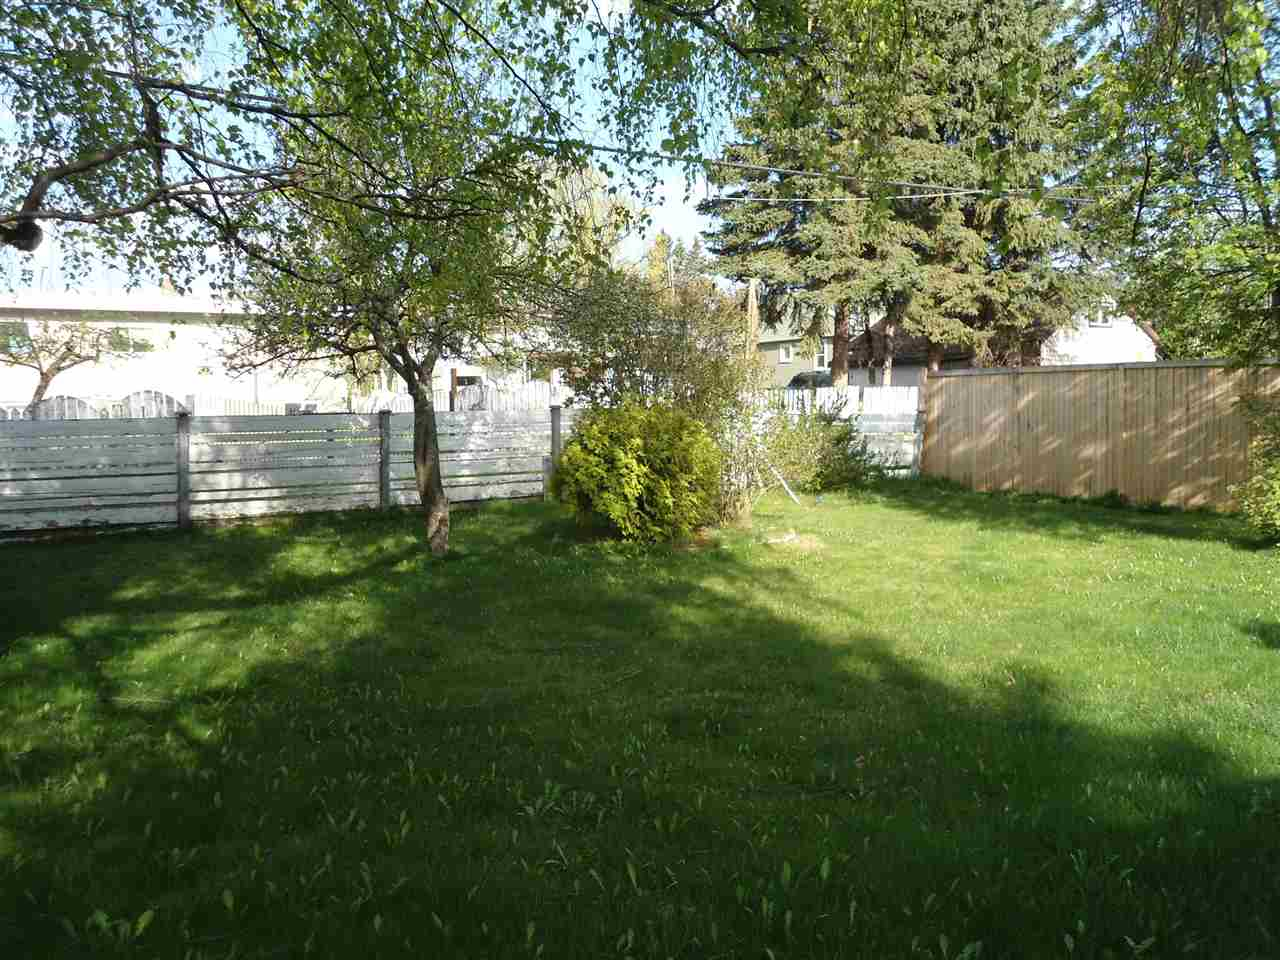 Photo 5: 1857 NORWOOD Street in Prince George: Connaught House for sale (PG City Central (Zone 72))  : MLS(r) # R2062159